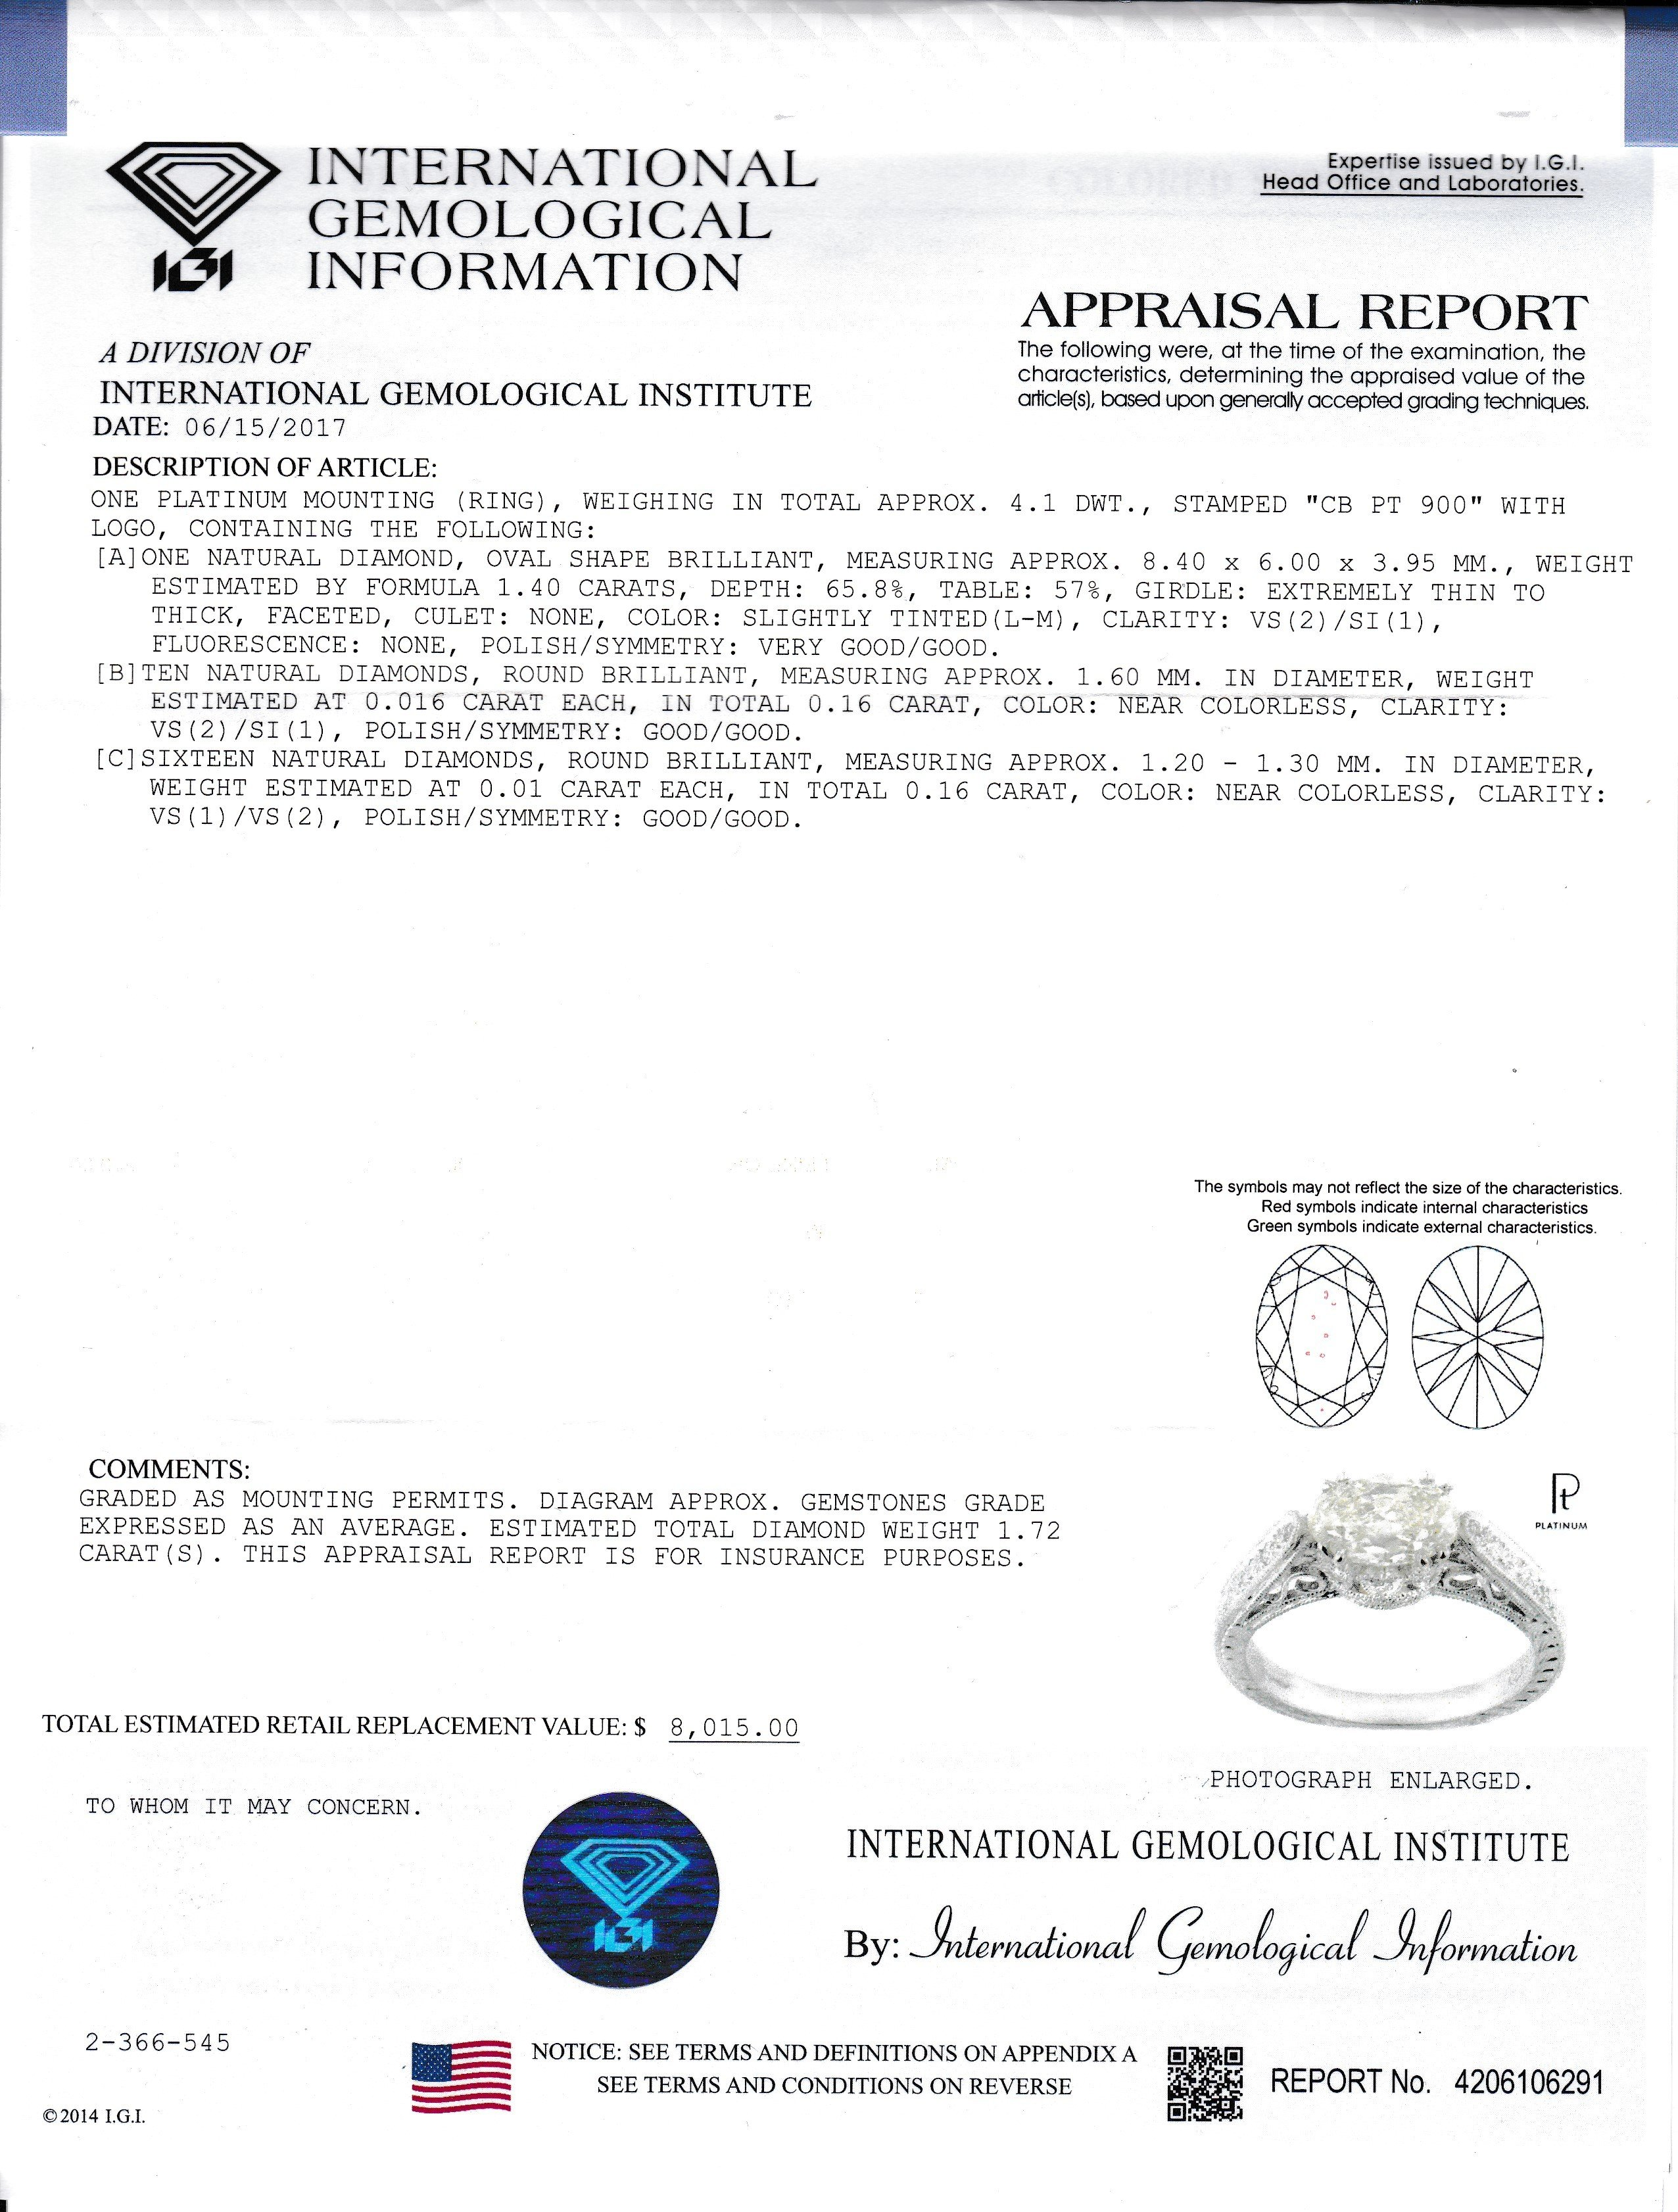 IGI oval diamond report